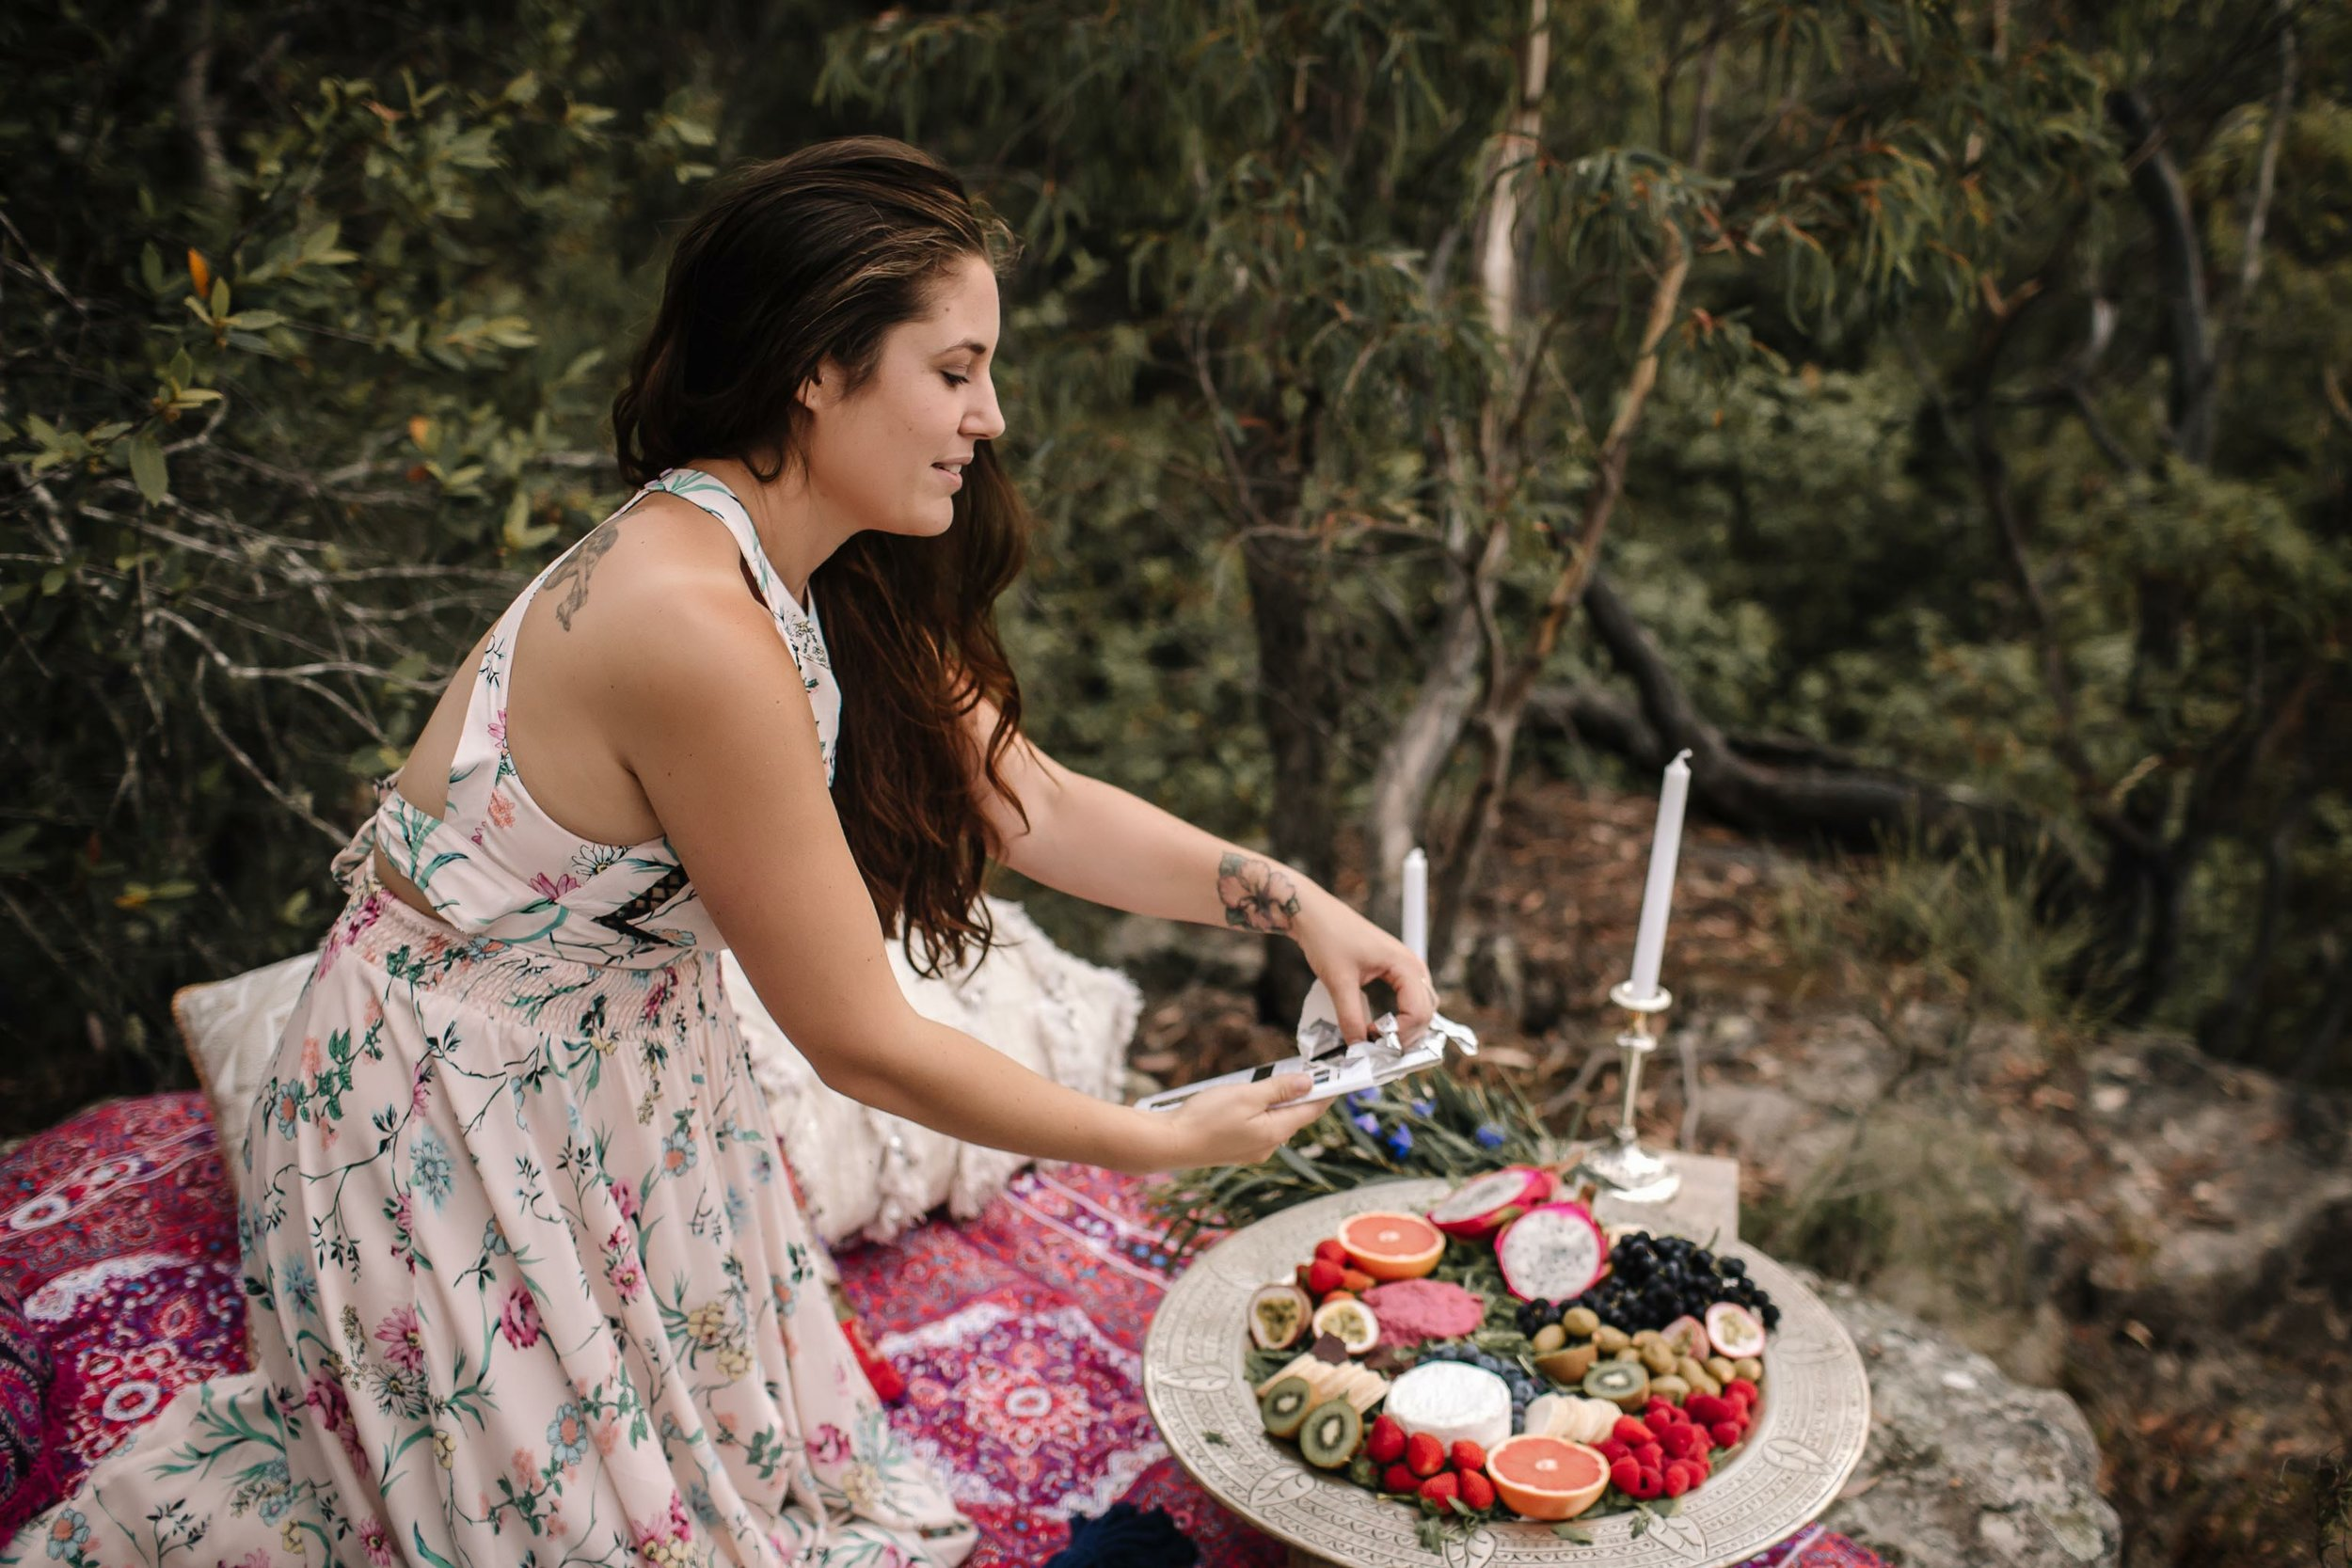 Q&A with Hannah Lange - Hannah is a mumma, a picnic expert and a big lover of nature. She talks about the real life struggles that come with building your business and the importance of connecting with mother nature along the way.